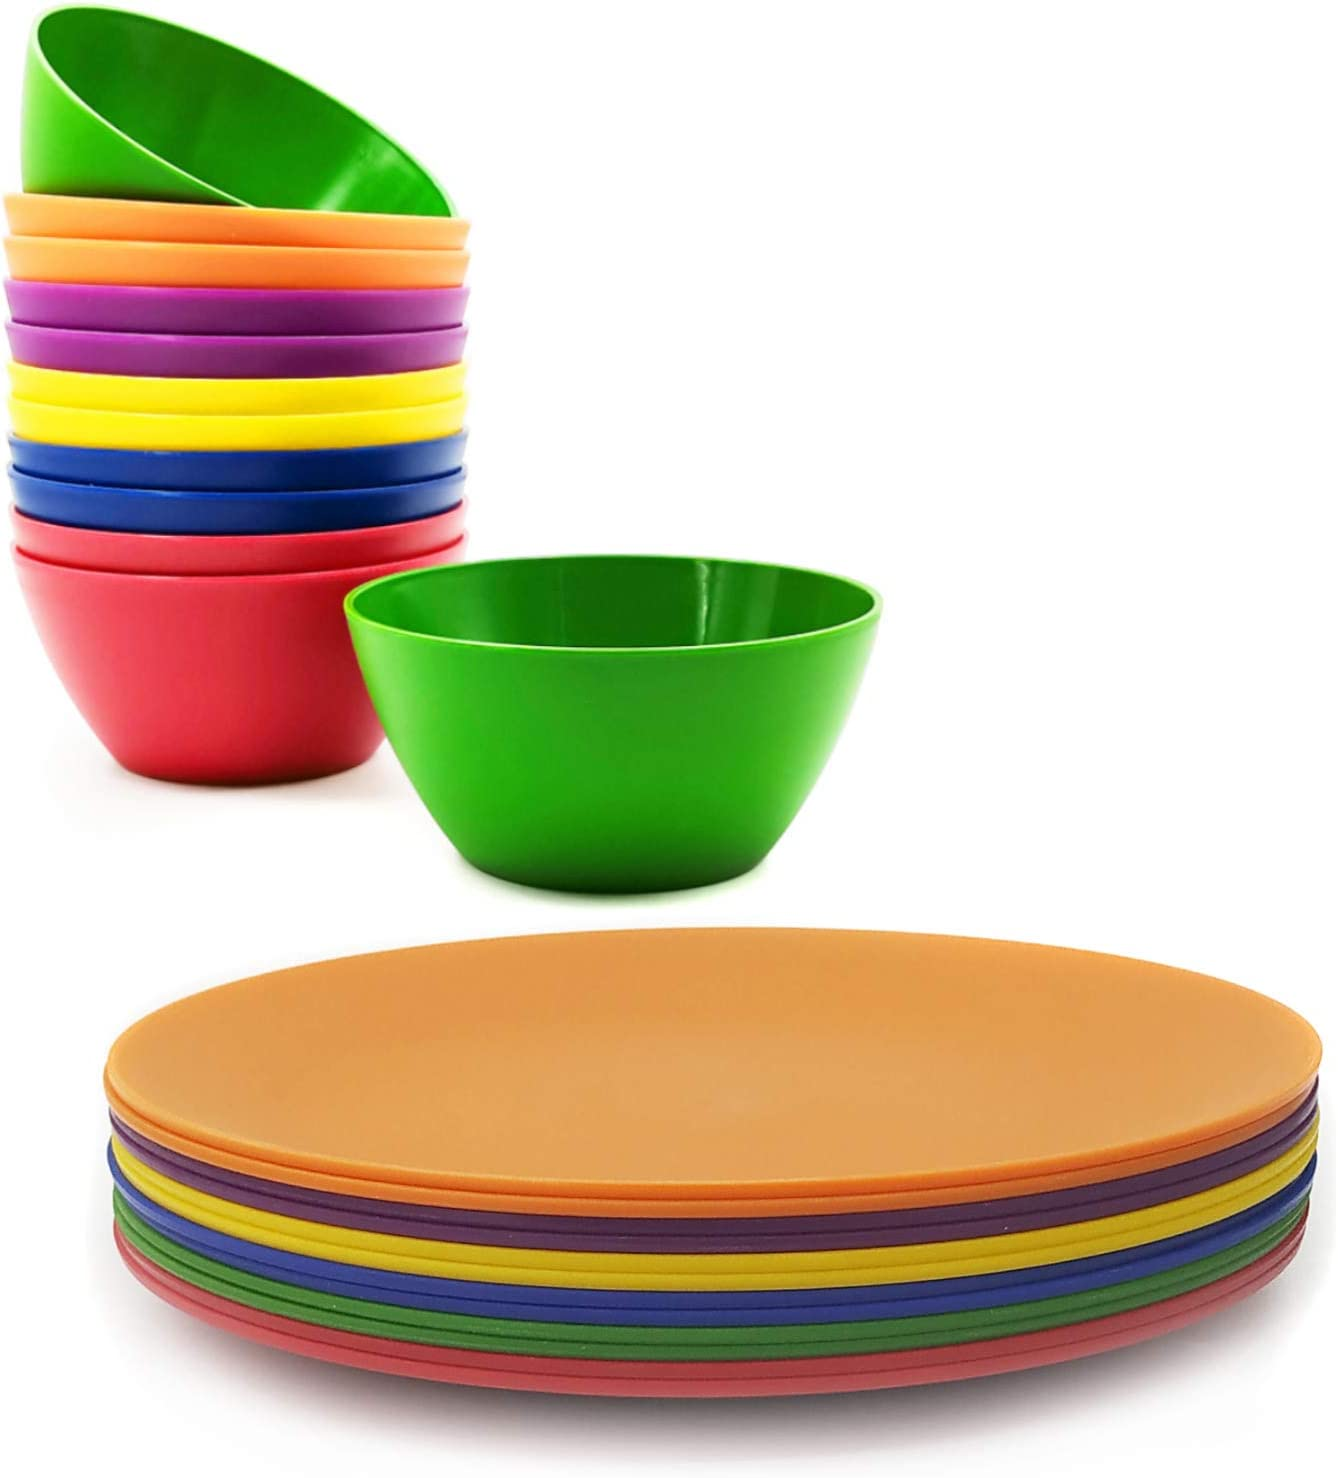 Unbreakable 24-piece gift Plastic Dinnerware set Reusable and Plates NEW before selling